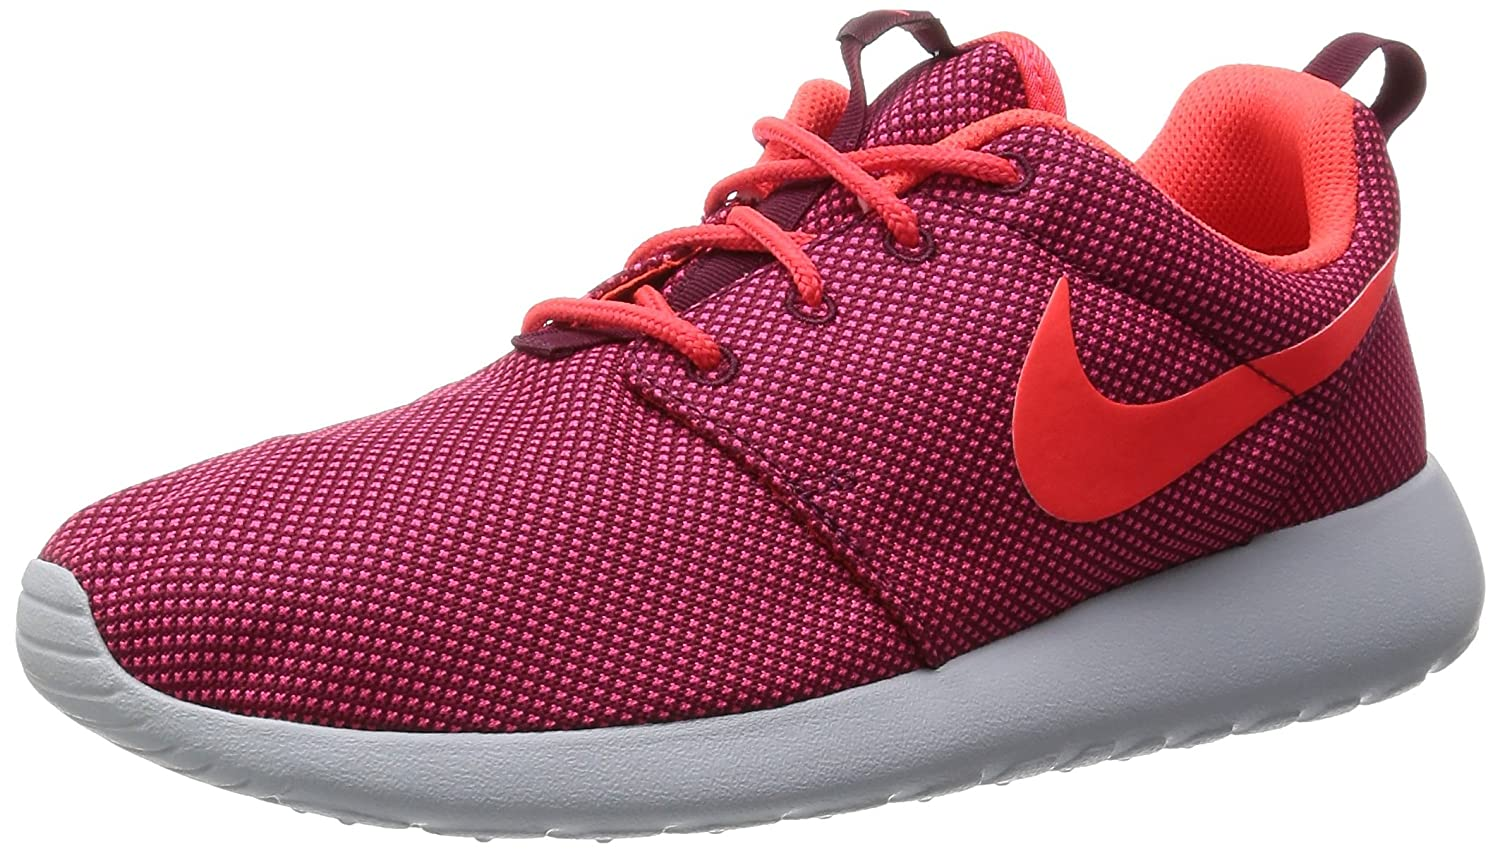 NIKE Women's Roshe One Running Shoe B00VF2Q5II 8M|Deep Garnet/Bright Crimson/Pure Platinum